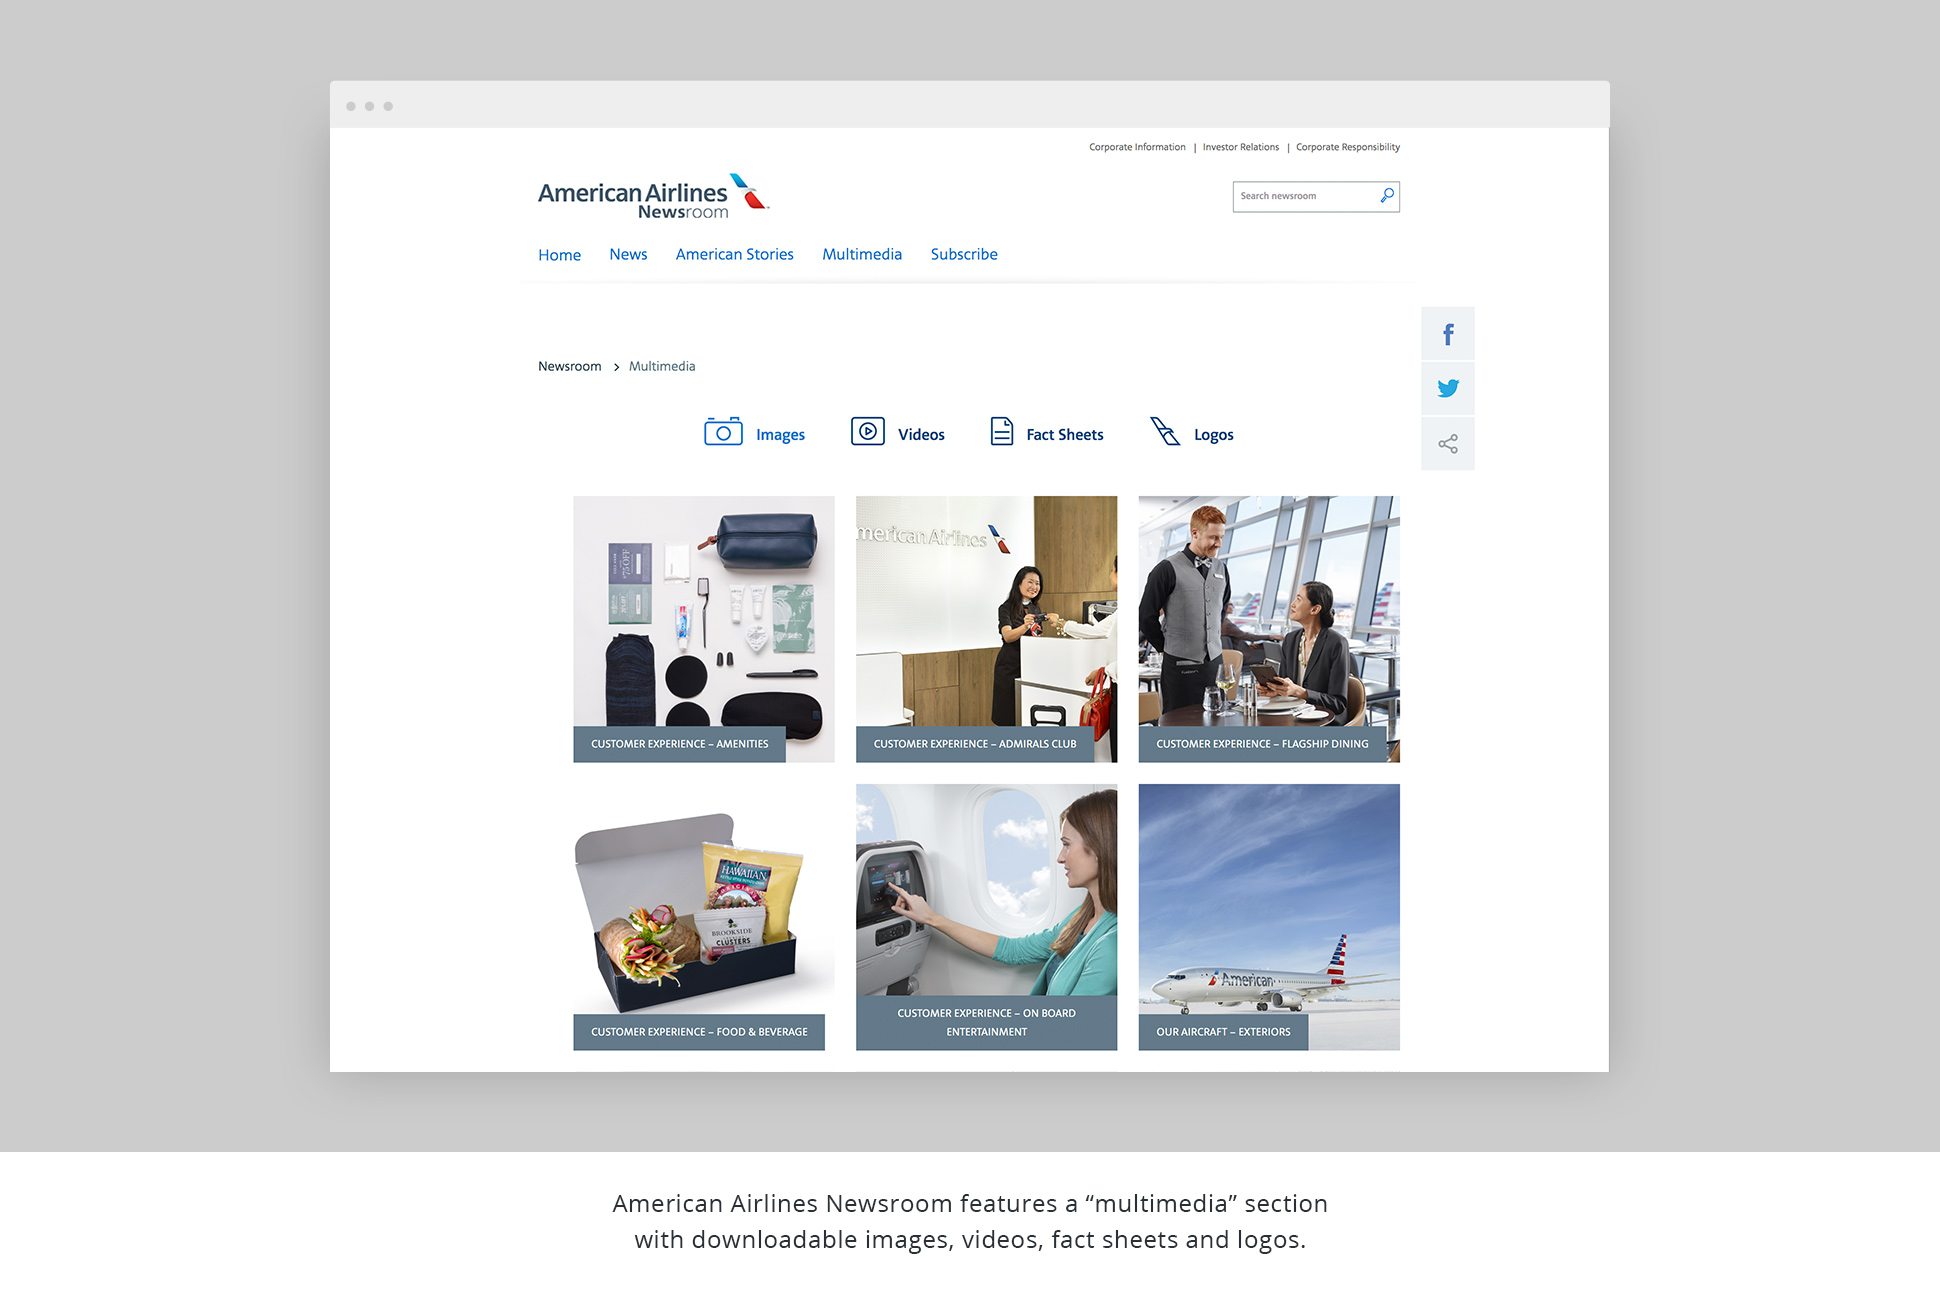 inset_image_american_airlines.jpg